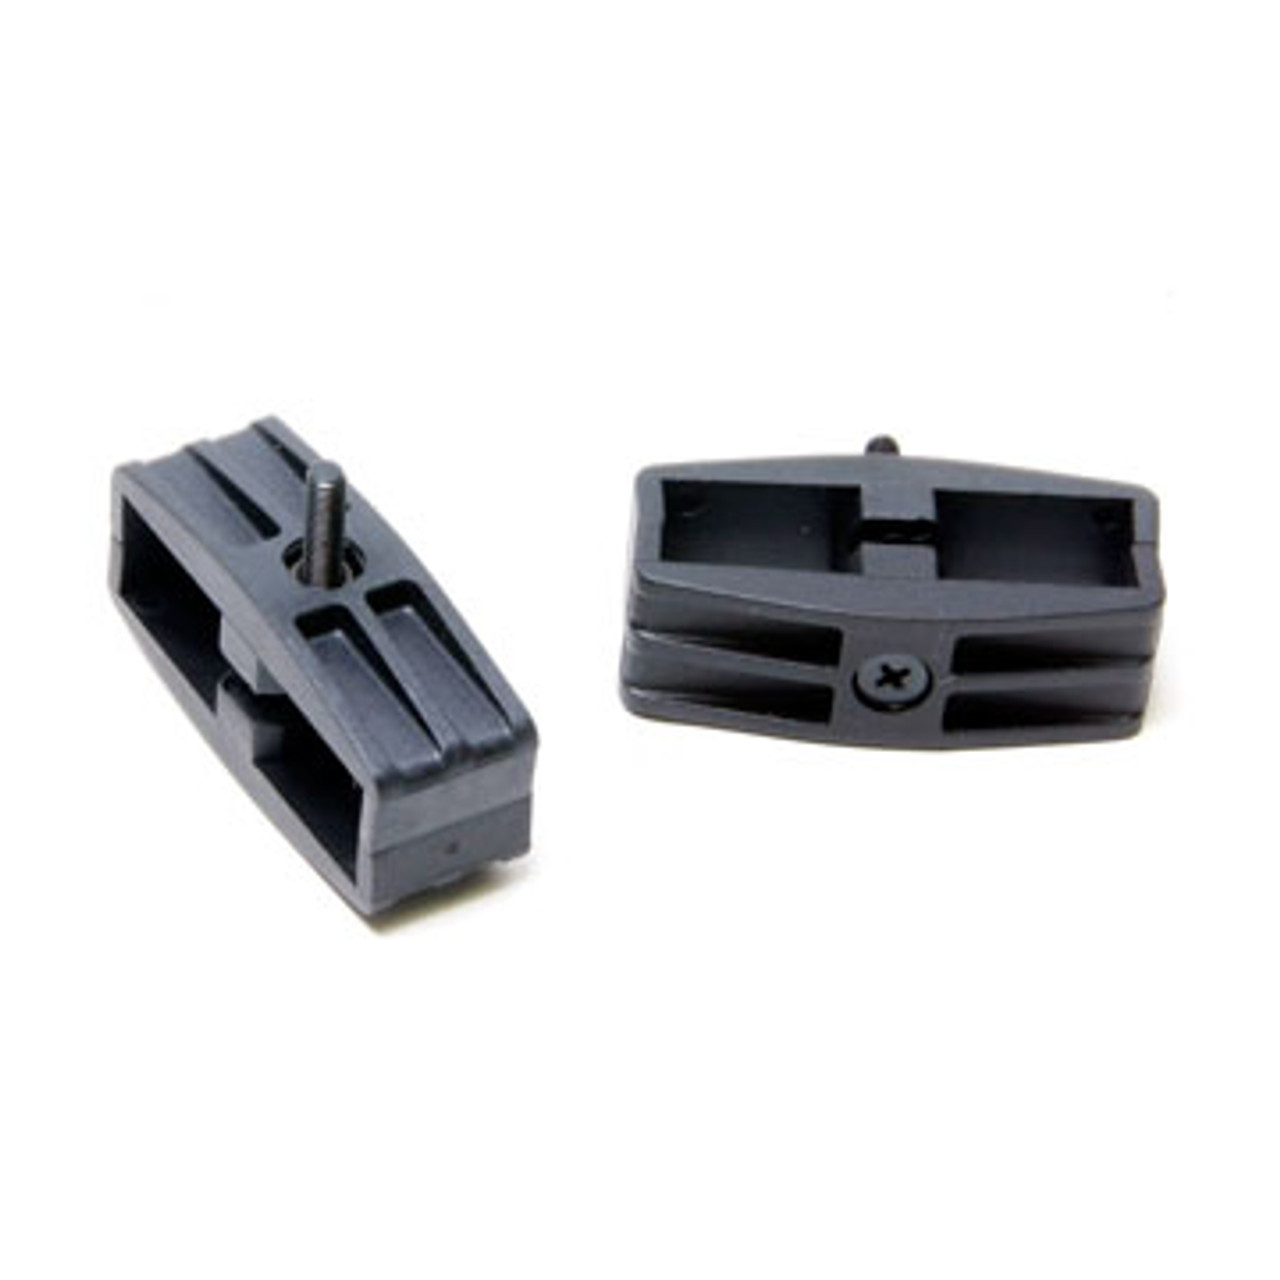 Archangel® AA922 Magazine Clamp 2-Pack - Black Polymer